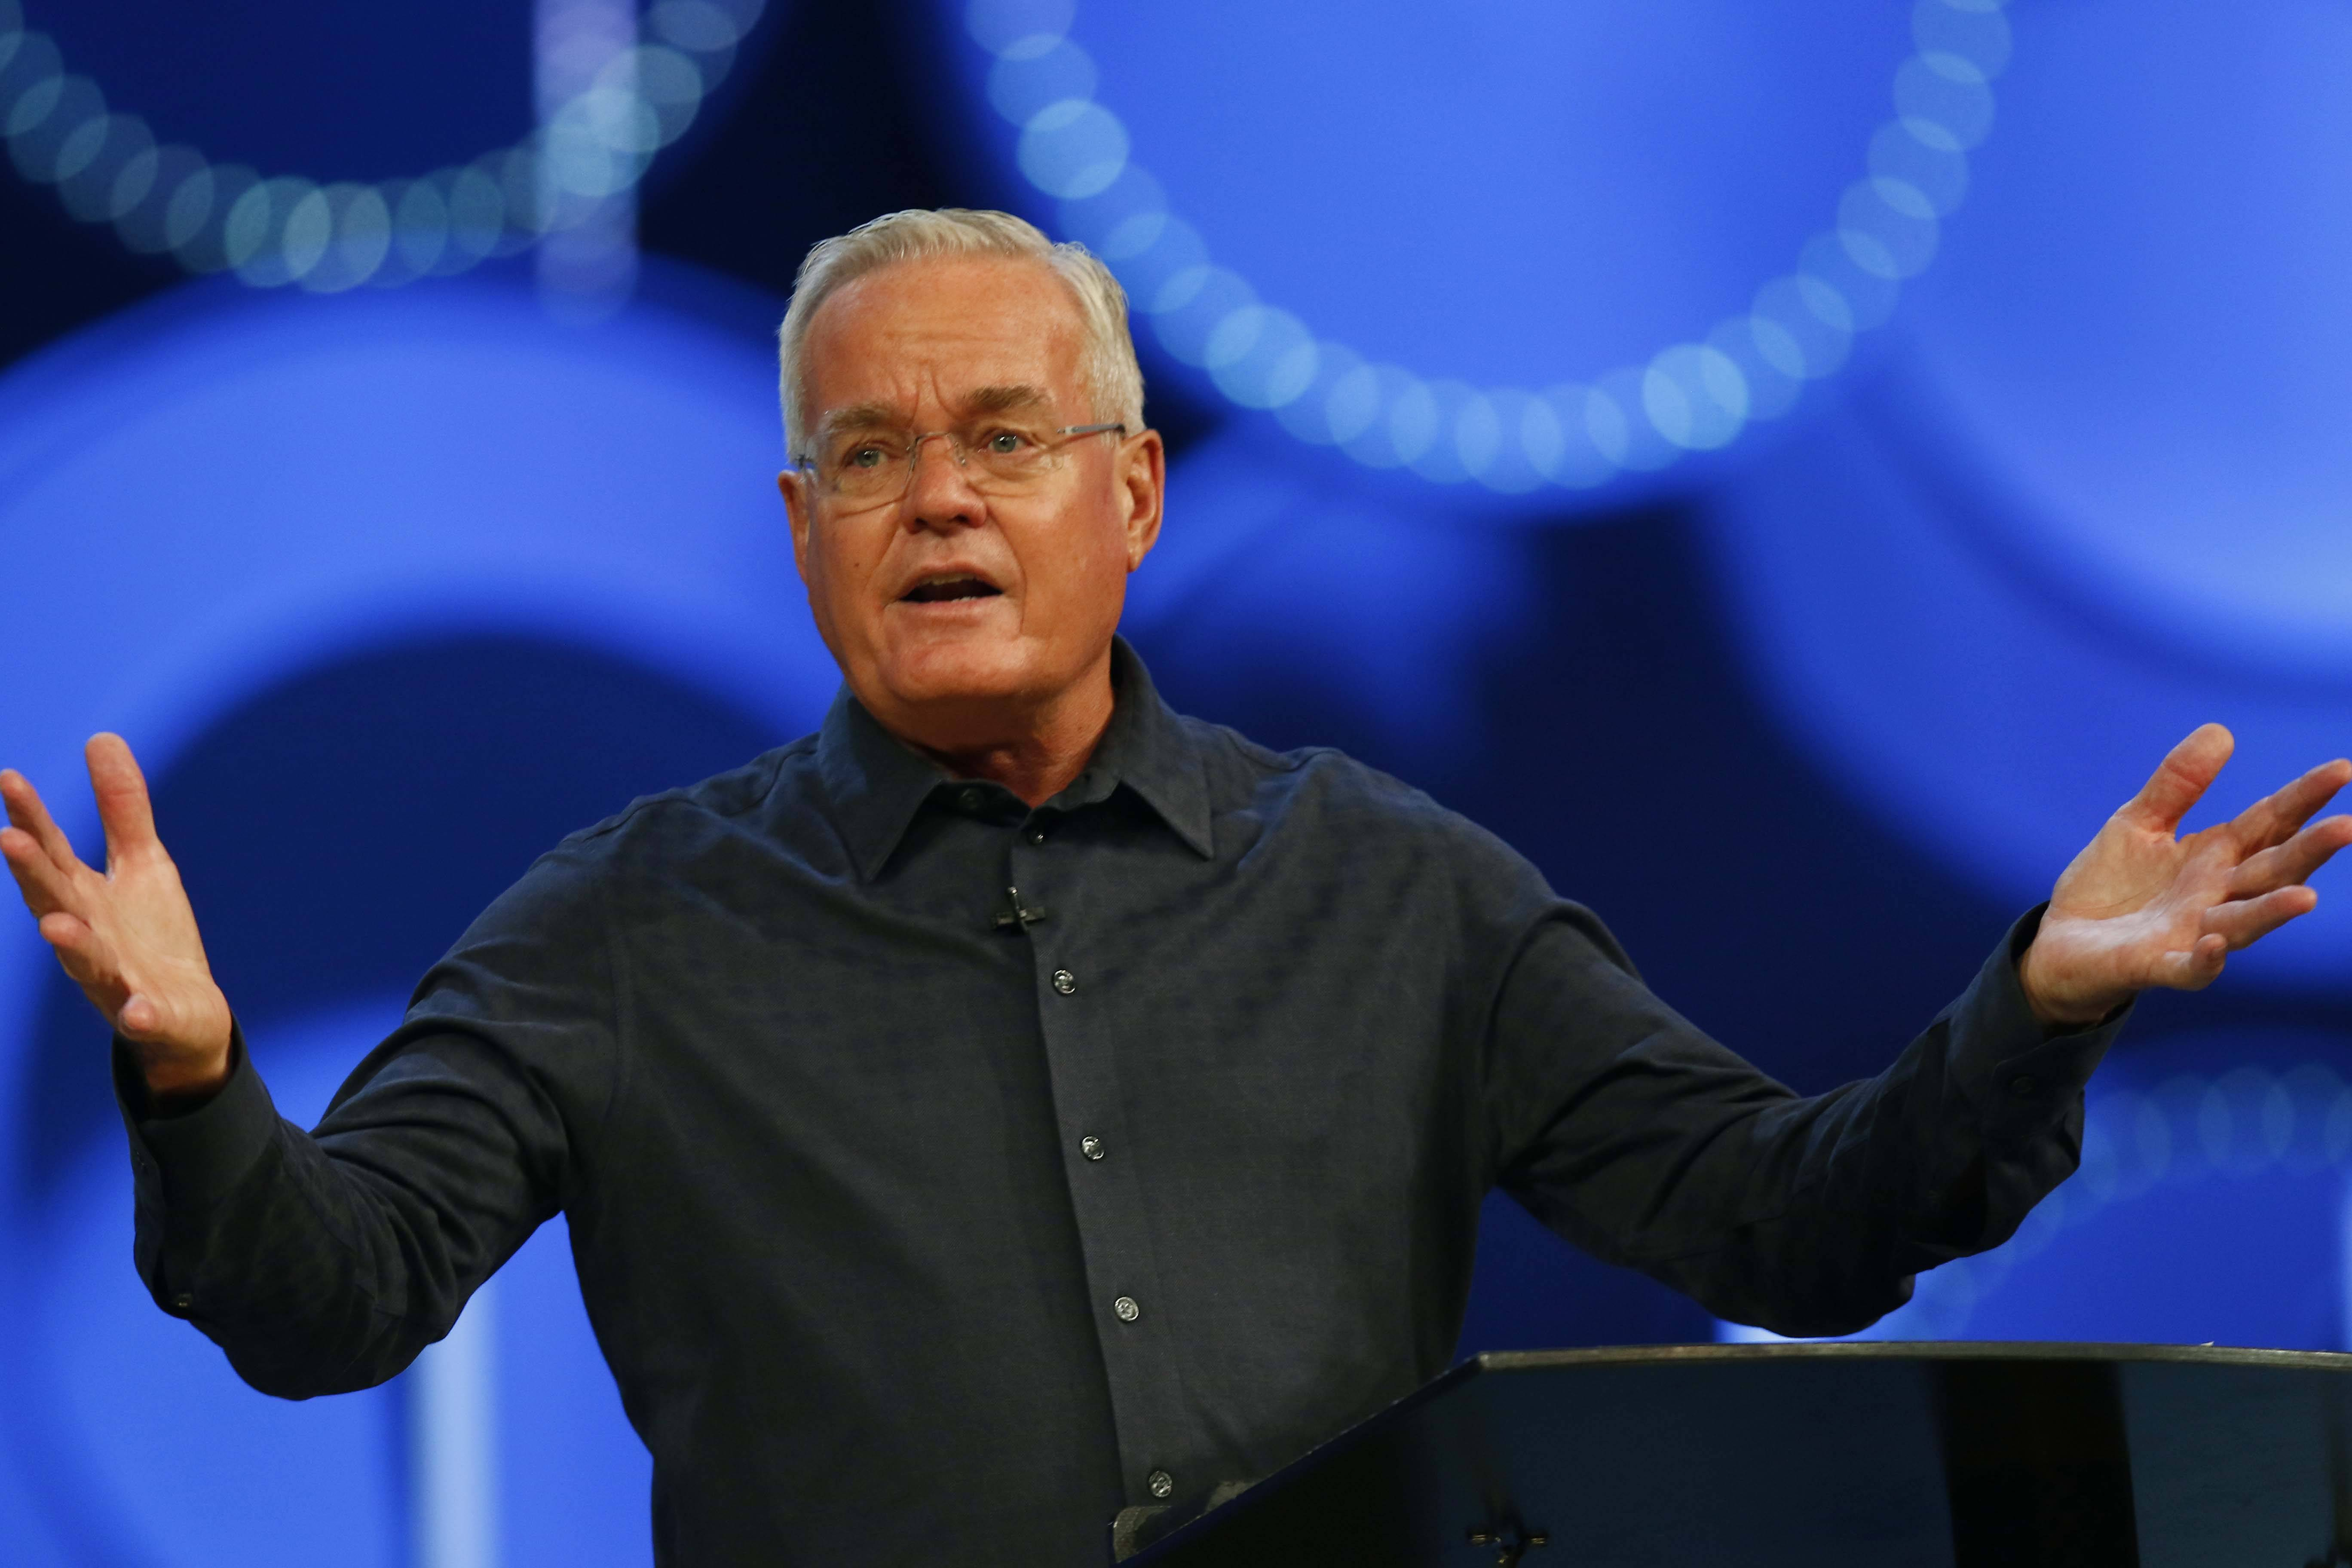 Bill Hybels stepped down as senior pastor of Willow Creek Community Church on April 10.